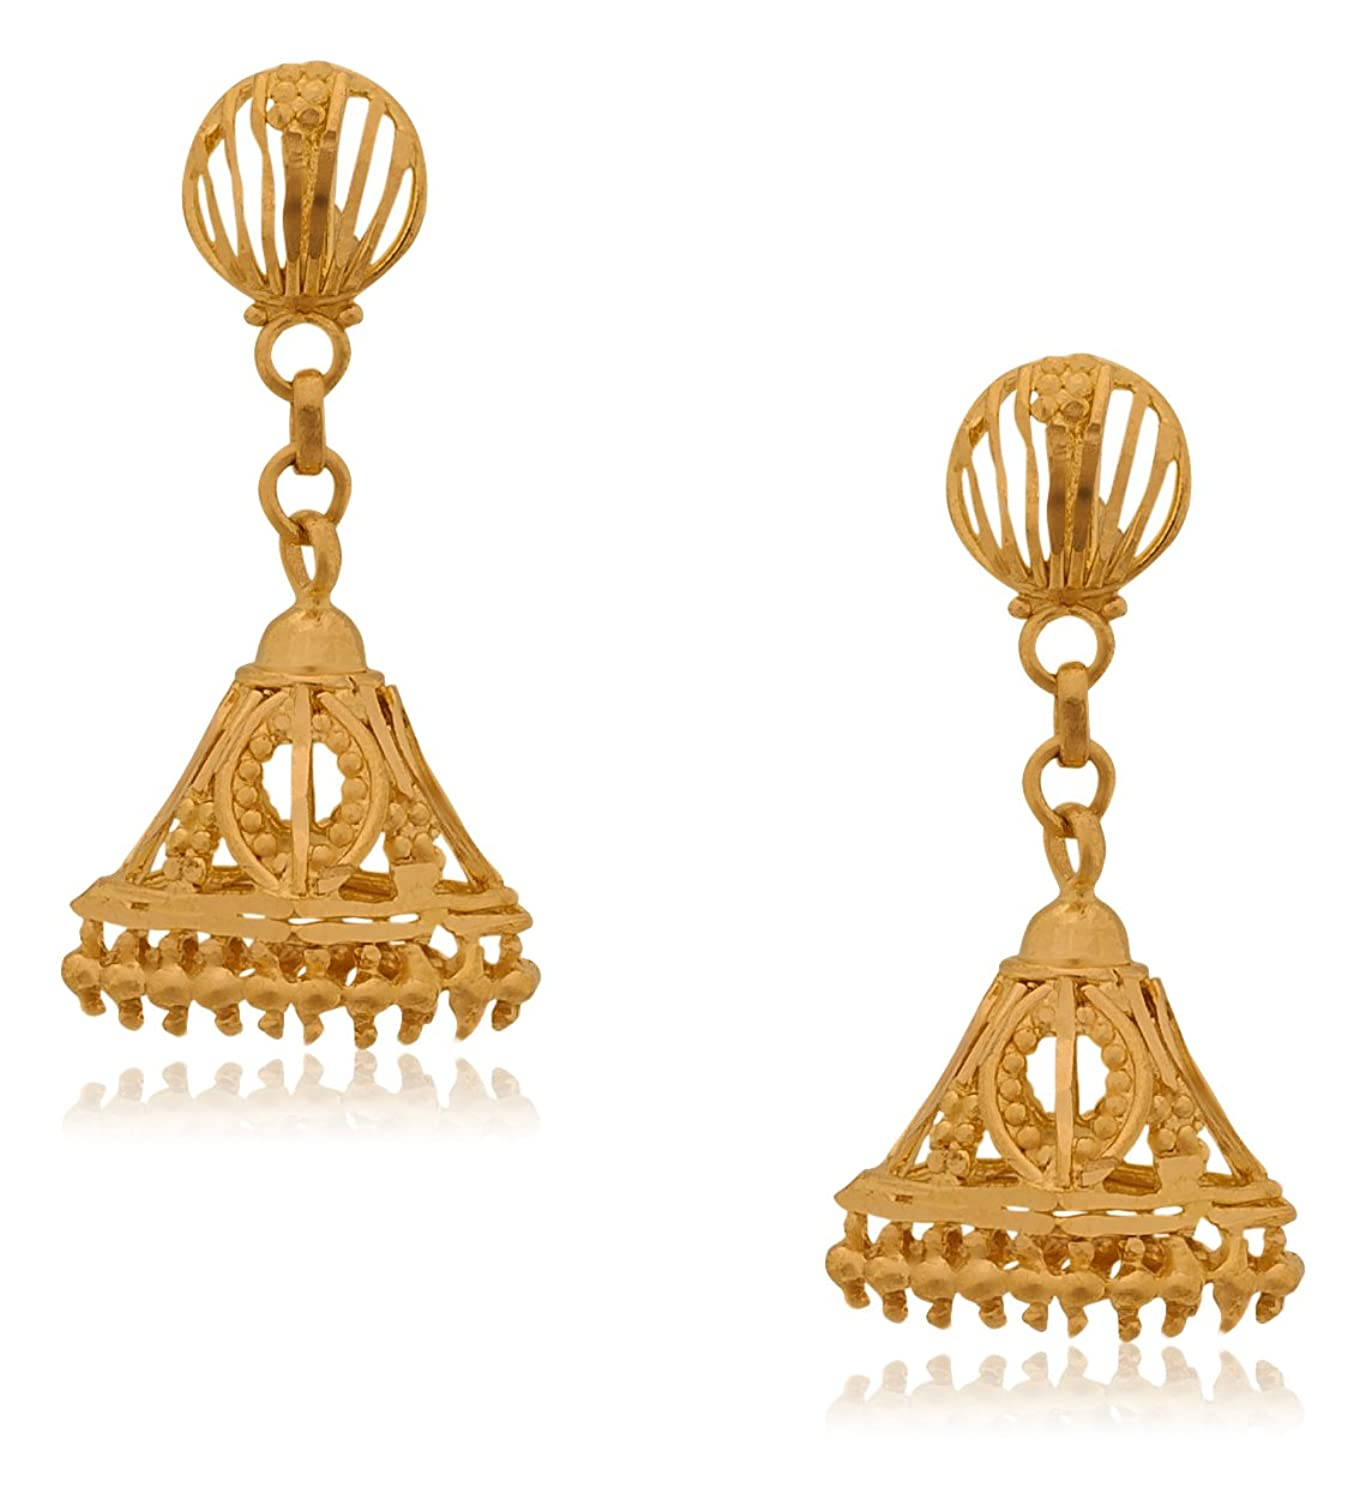 Best Of Online 22k Gold Jewellery Shopping India | Jewellry\'s Website